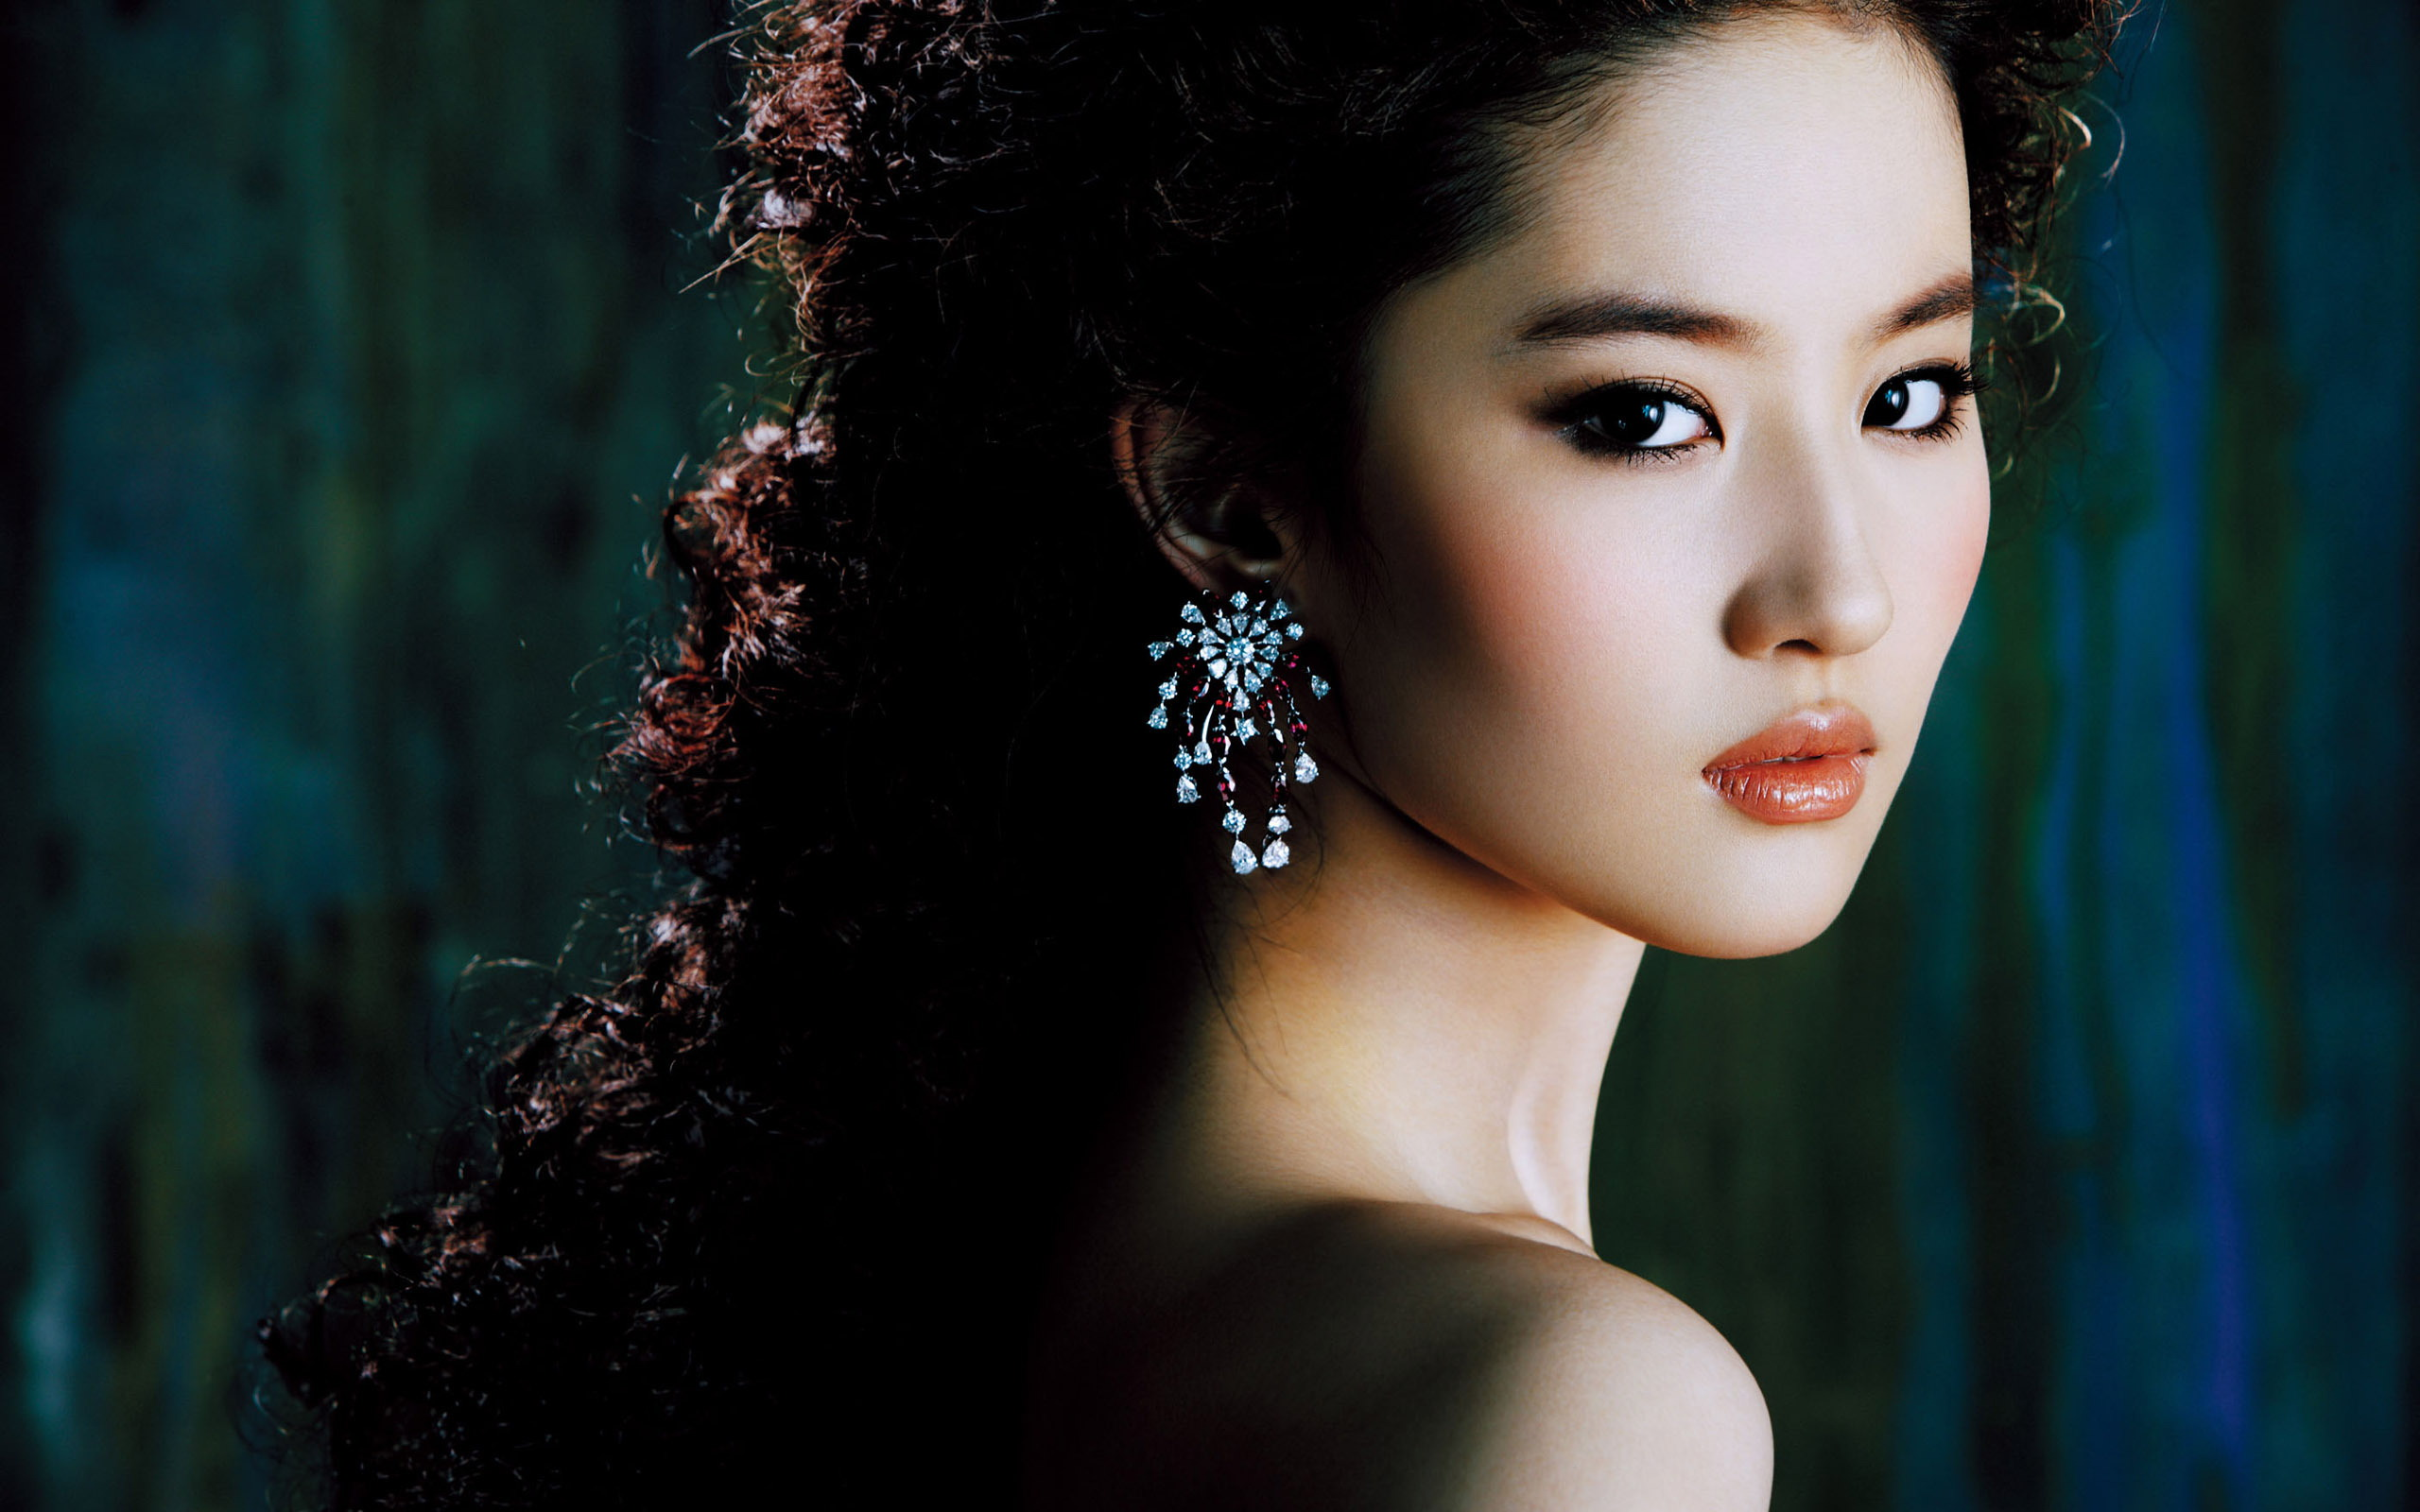 Chinese Actress Liu Yifei 342.59 Kb